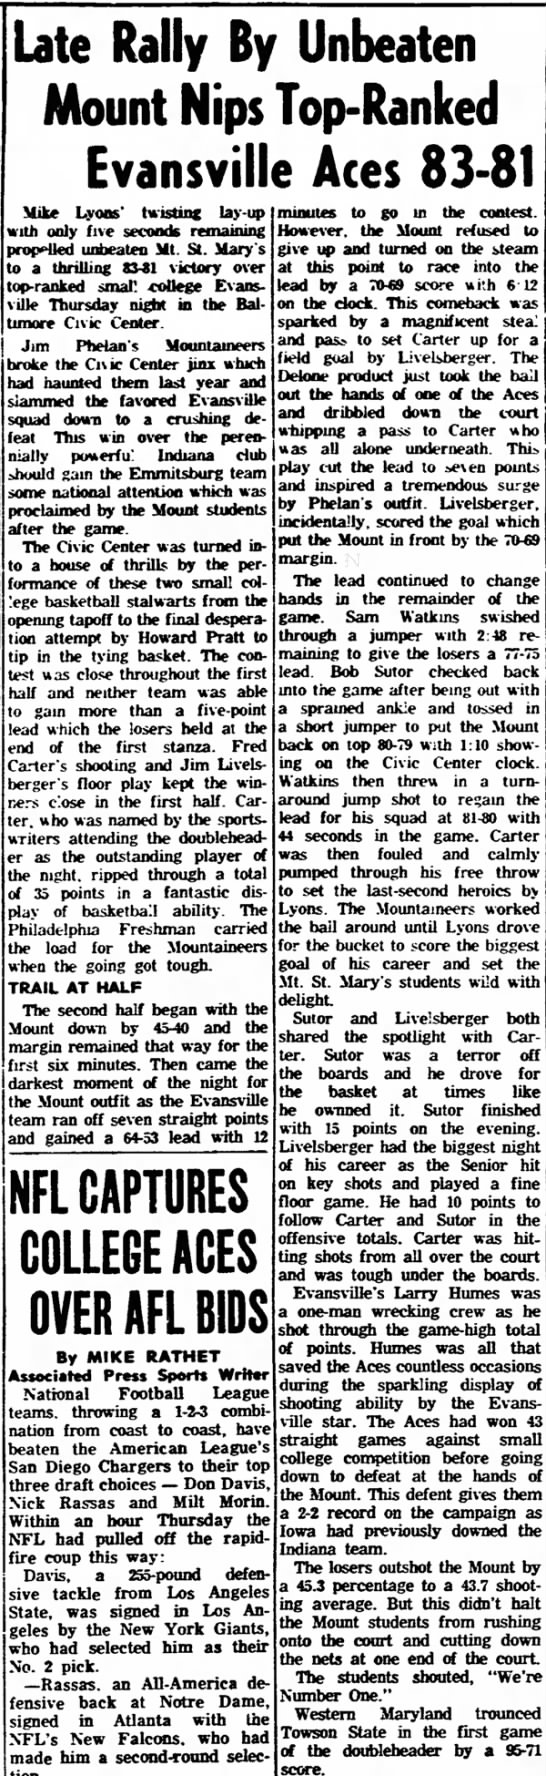 Dec 17, 1965 Gettysburg Times - on a up a Orange Late Rally By Unbeaten Mount...